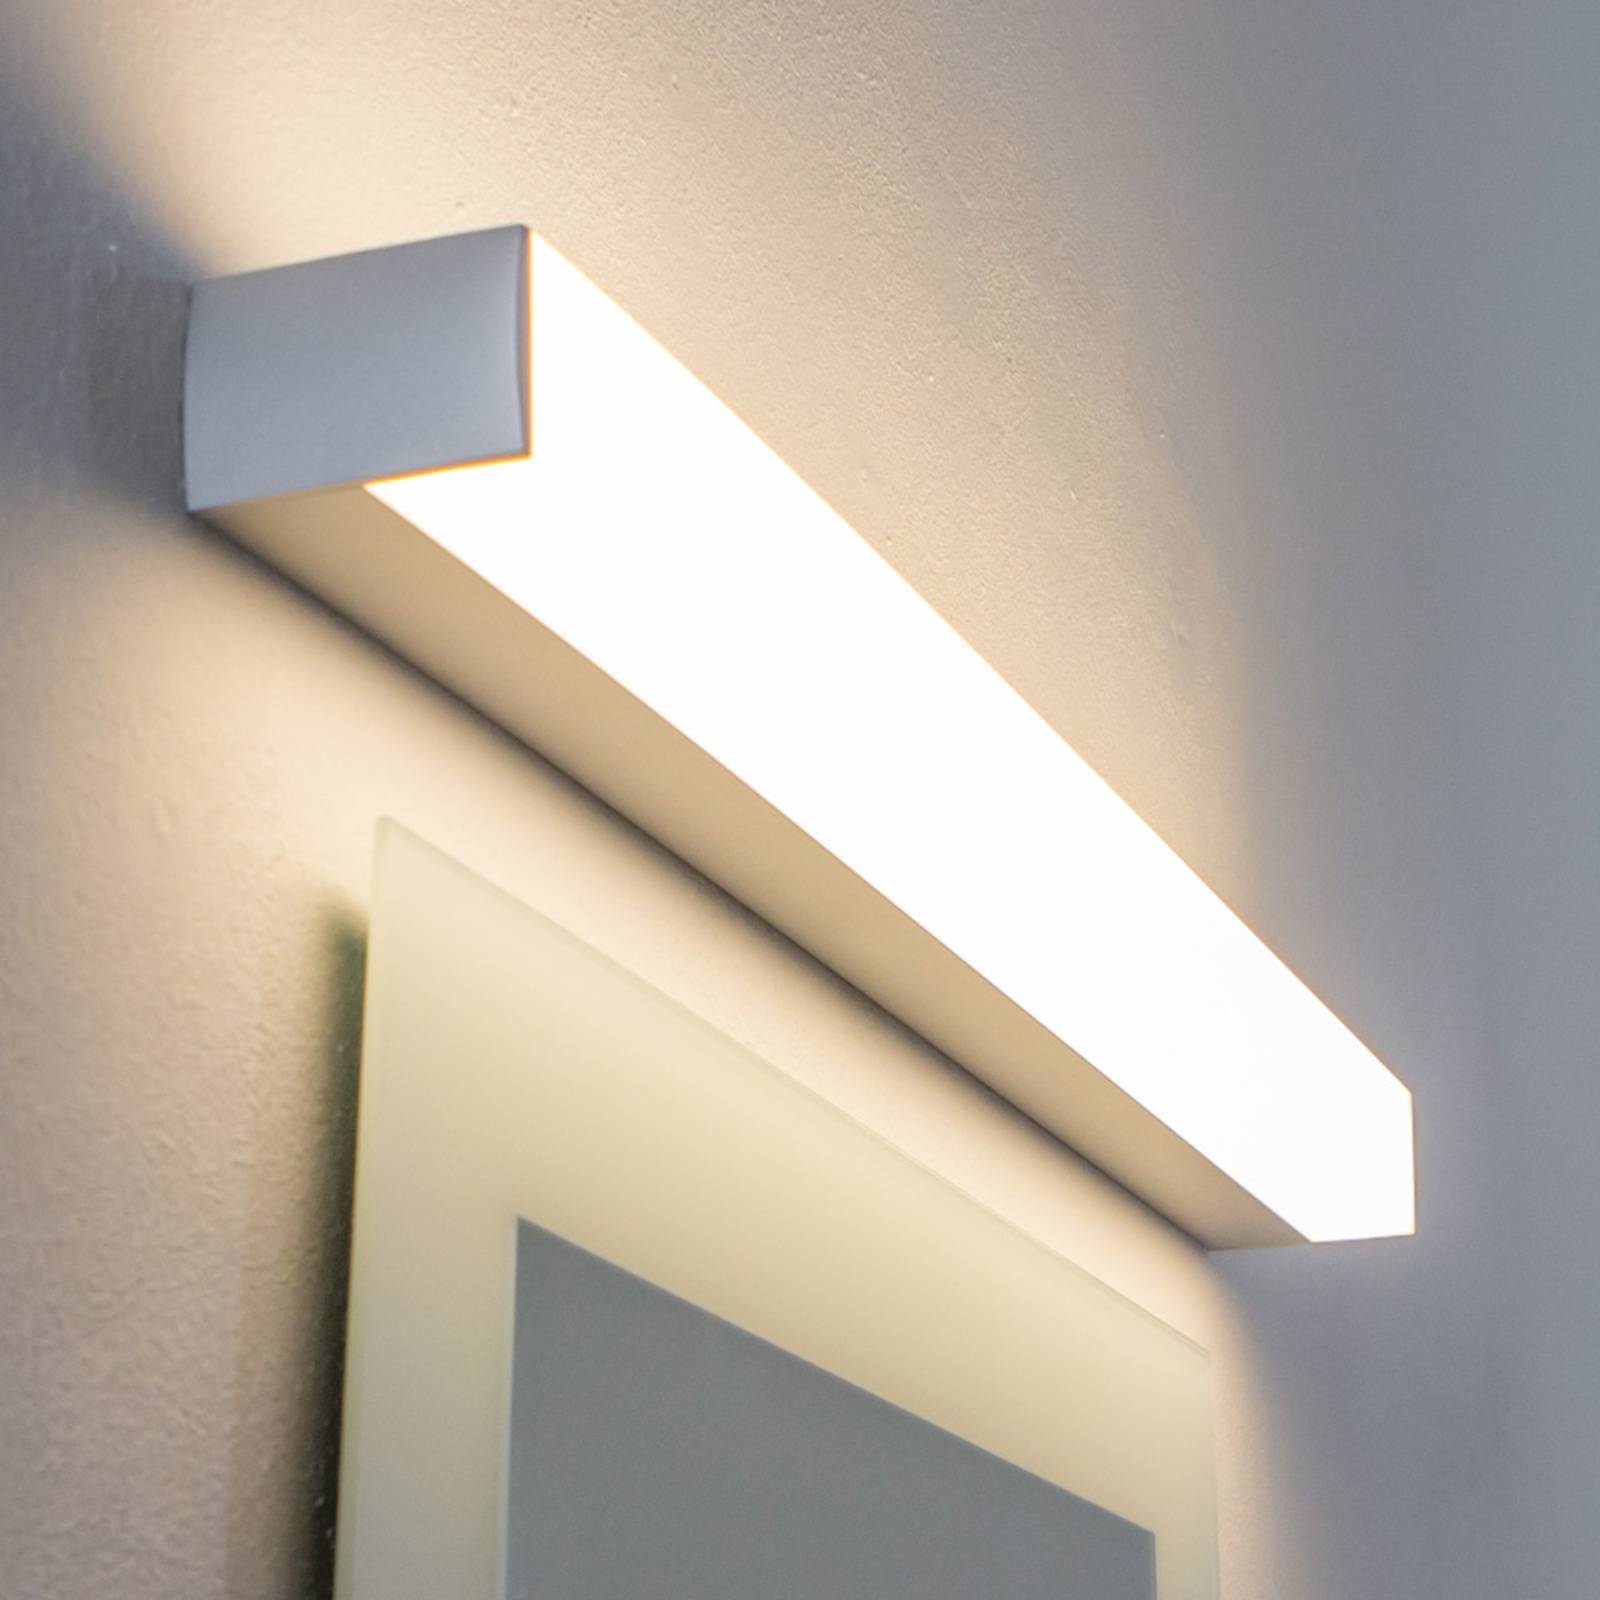 LED wall light Seno for mirror in bathroom 113.6cm from Pamalux